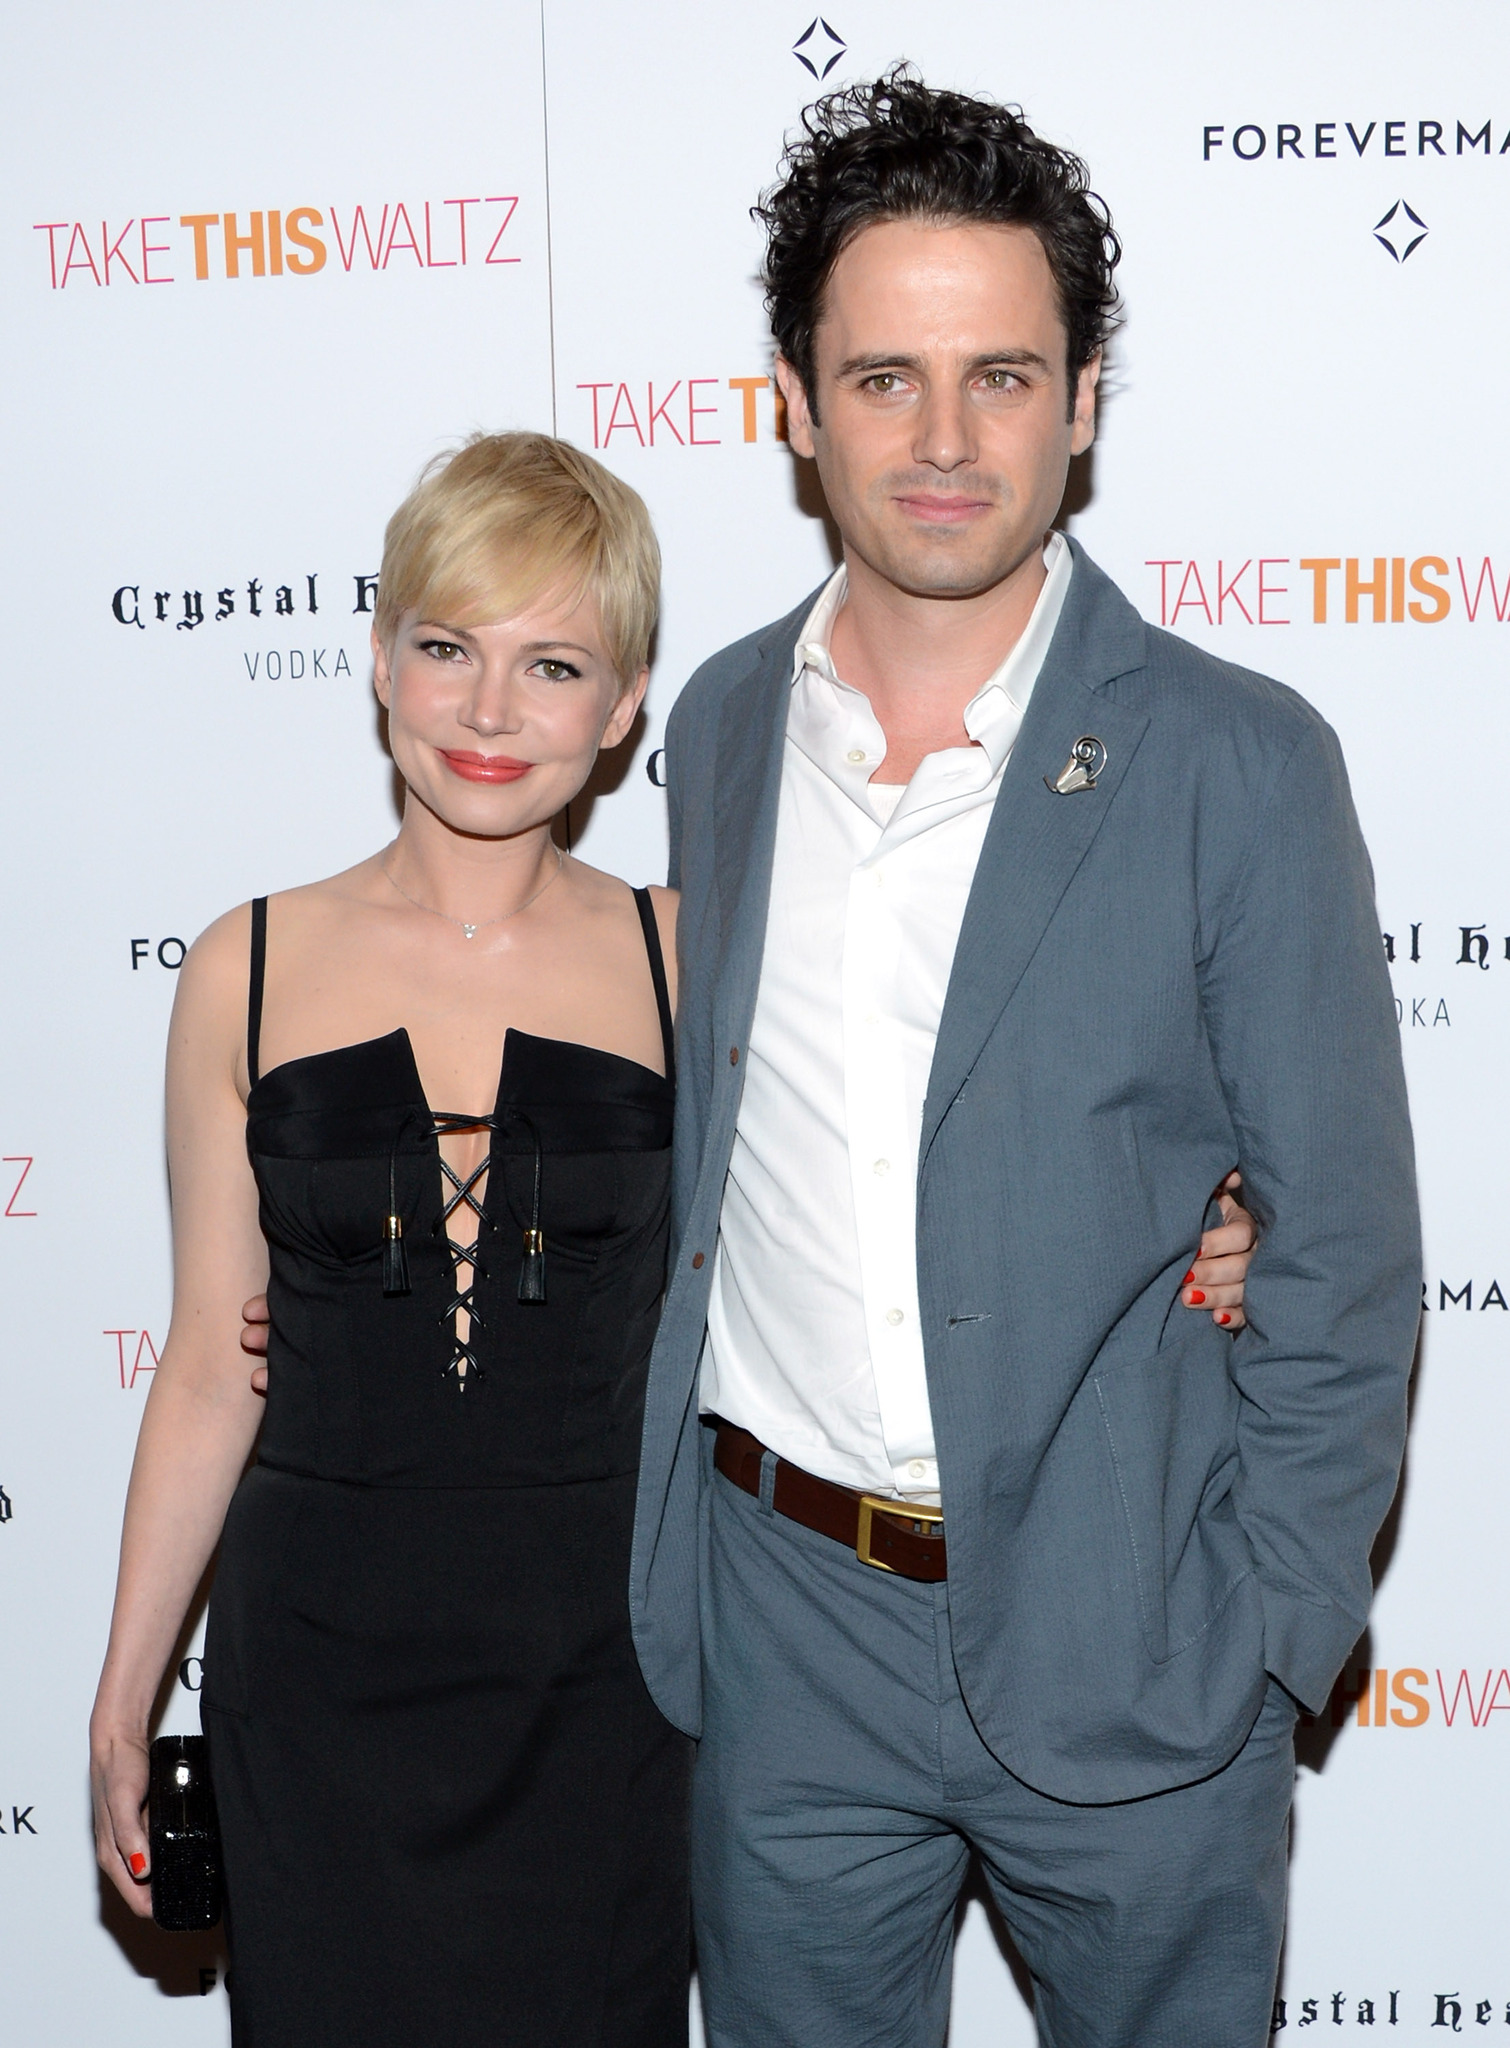 Luke Kirby and Michelle Williams at an event for Take This Waltz (2011)